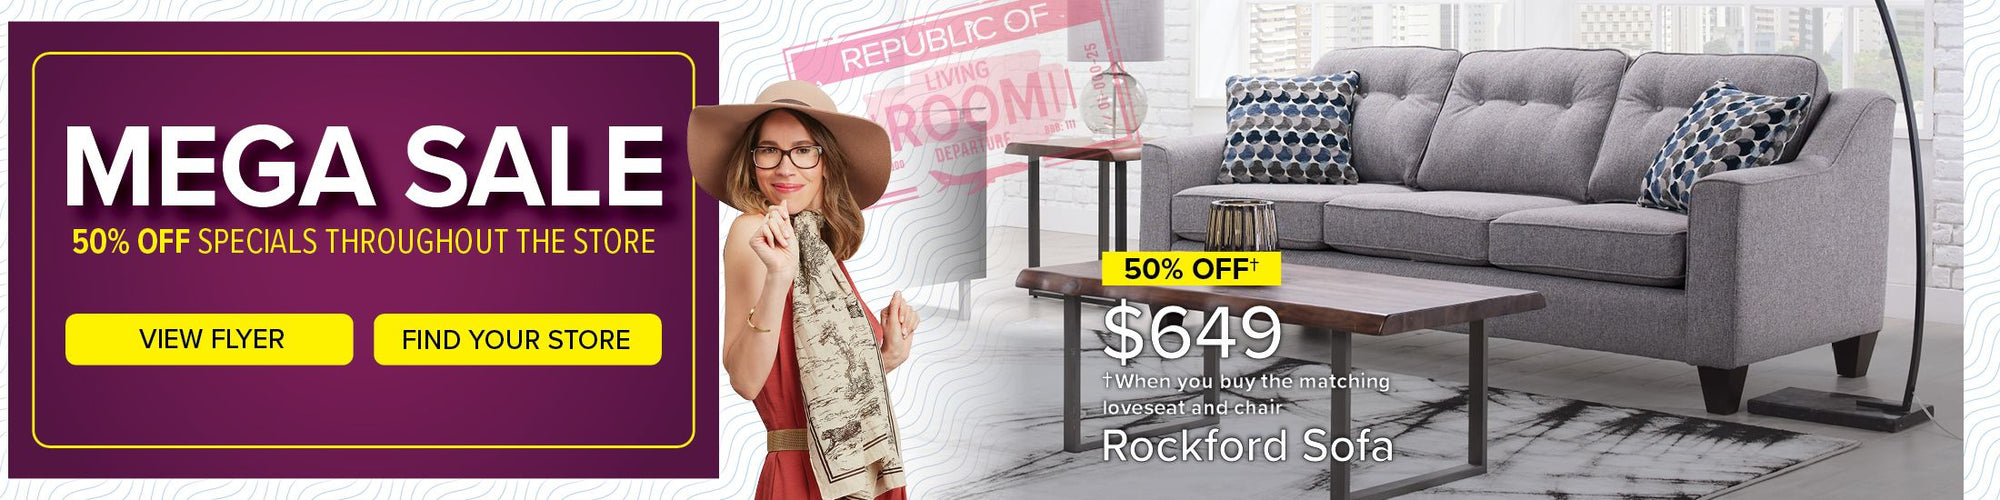 On now for a limited time only. 50/50 Sale. 50% Off specials & take 50 months to pay. View Flyer. Find Your Store. 50% Off $649 When you buy the matching loveseat and chair. Rockford Sofa